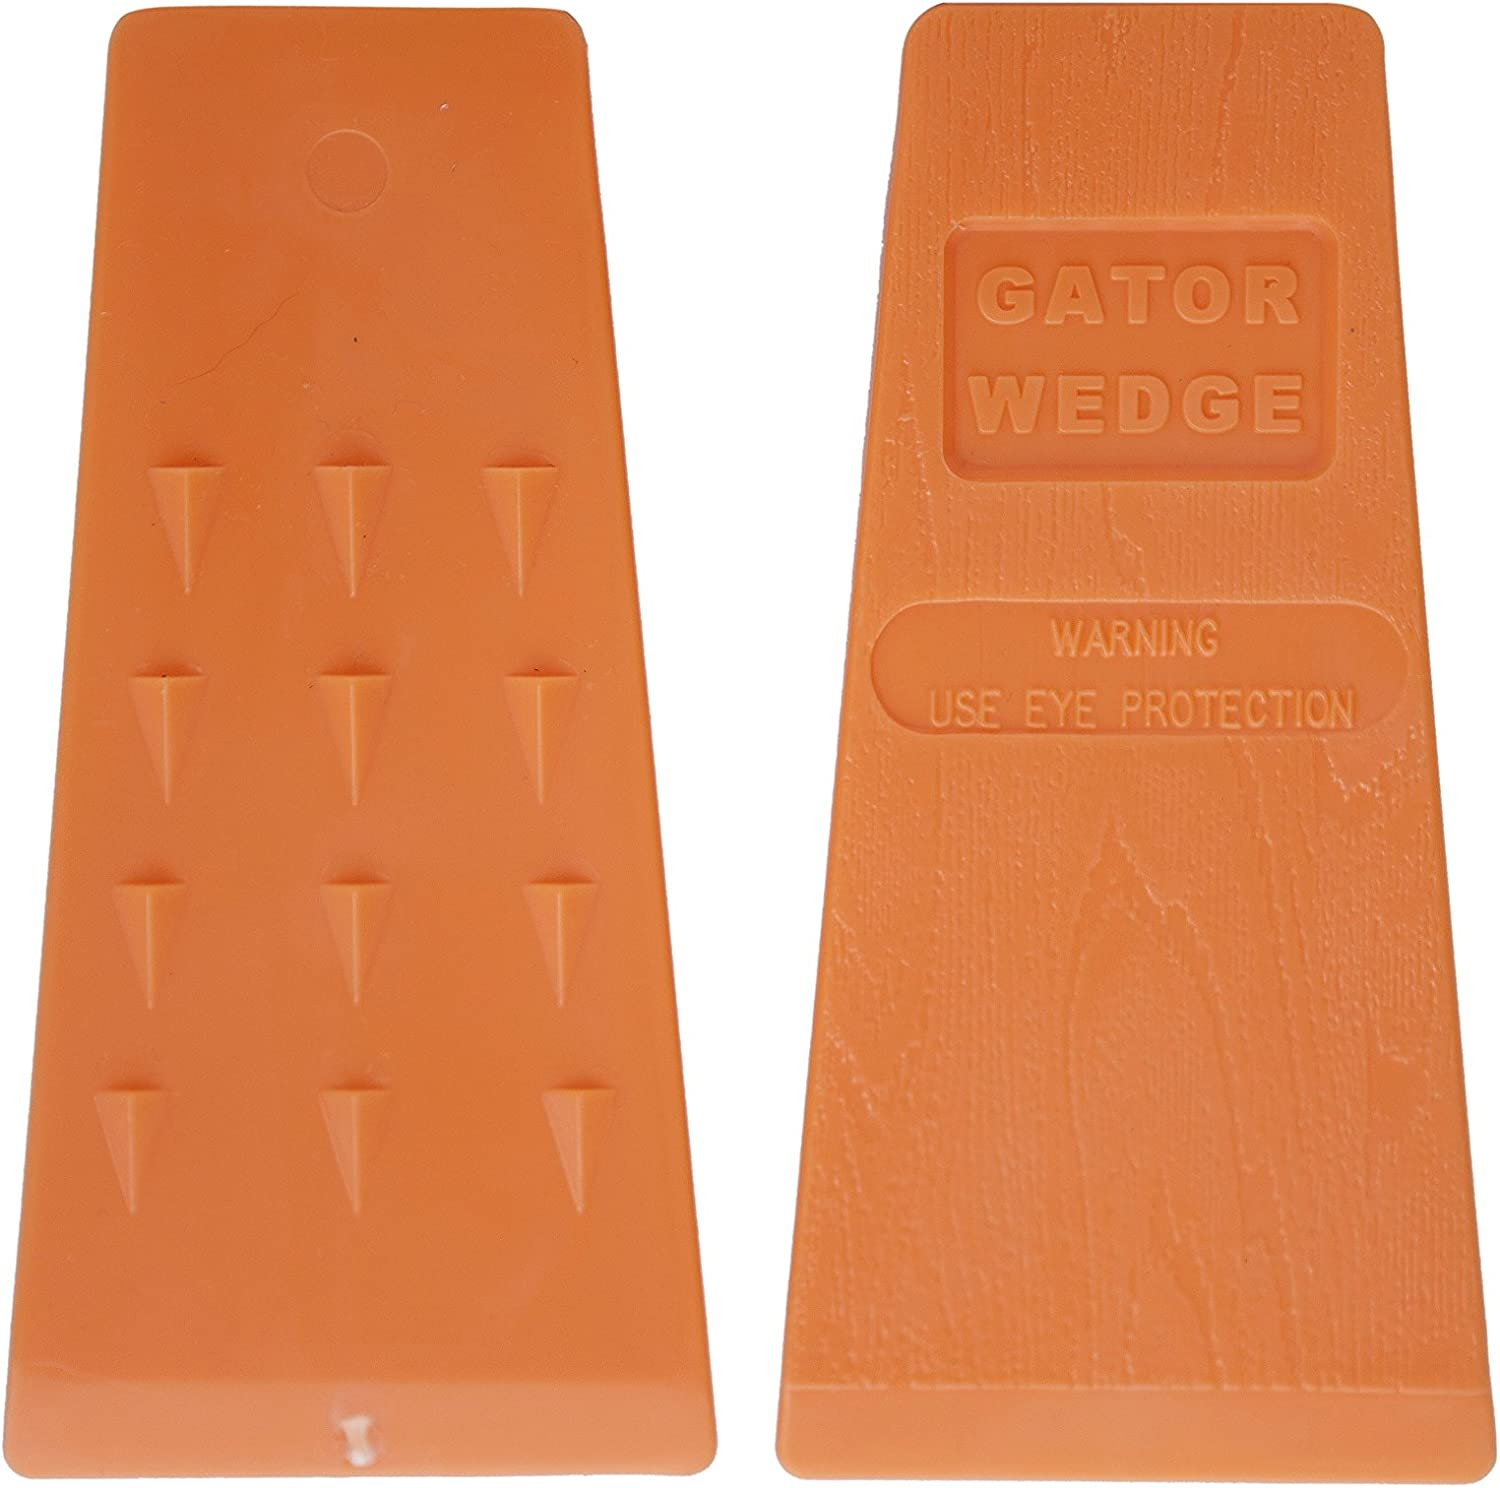 Gator Wedge USA Made 5.5 Inches Felling Wedges Logging Supplies for Chain Saw, 2 Pack